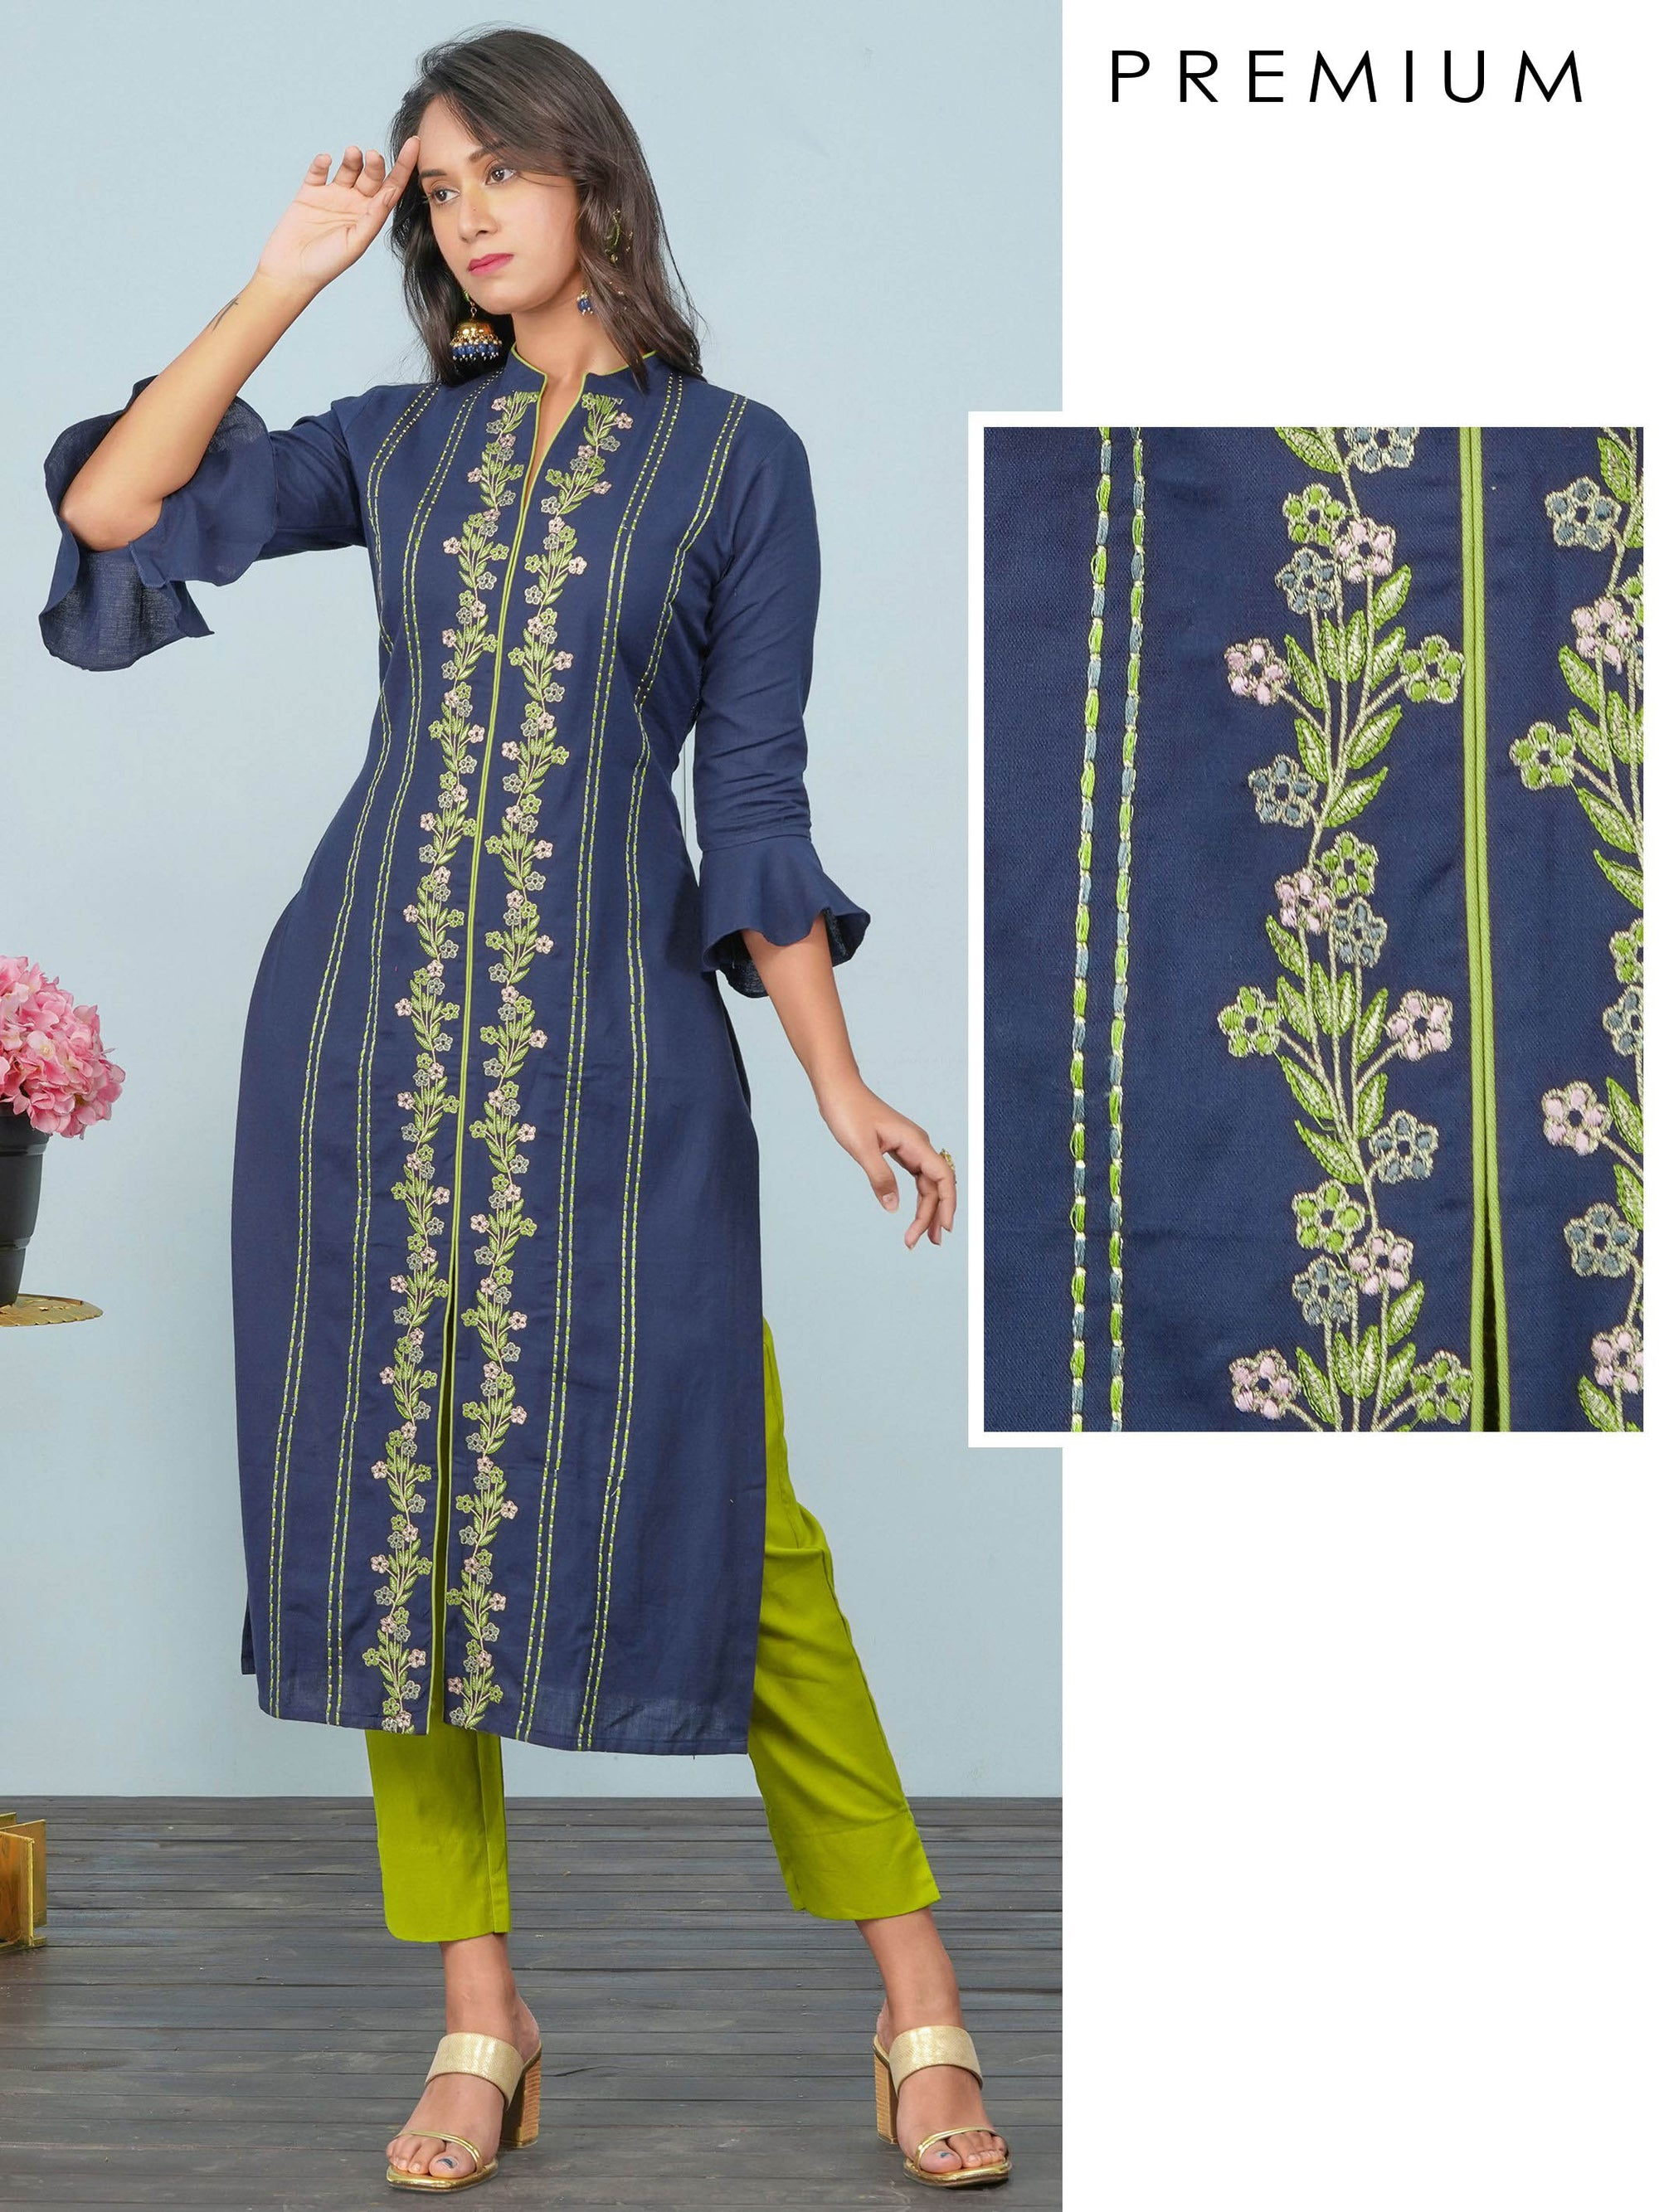 Floral & Chain Embroidered Cotton Kurti – Navy Blue